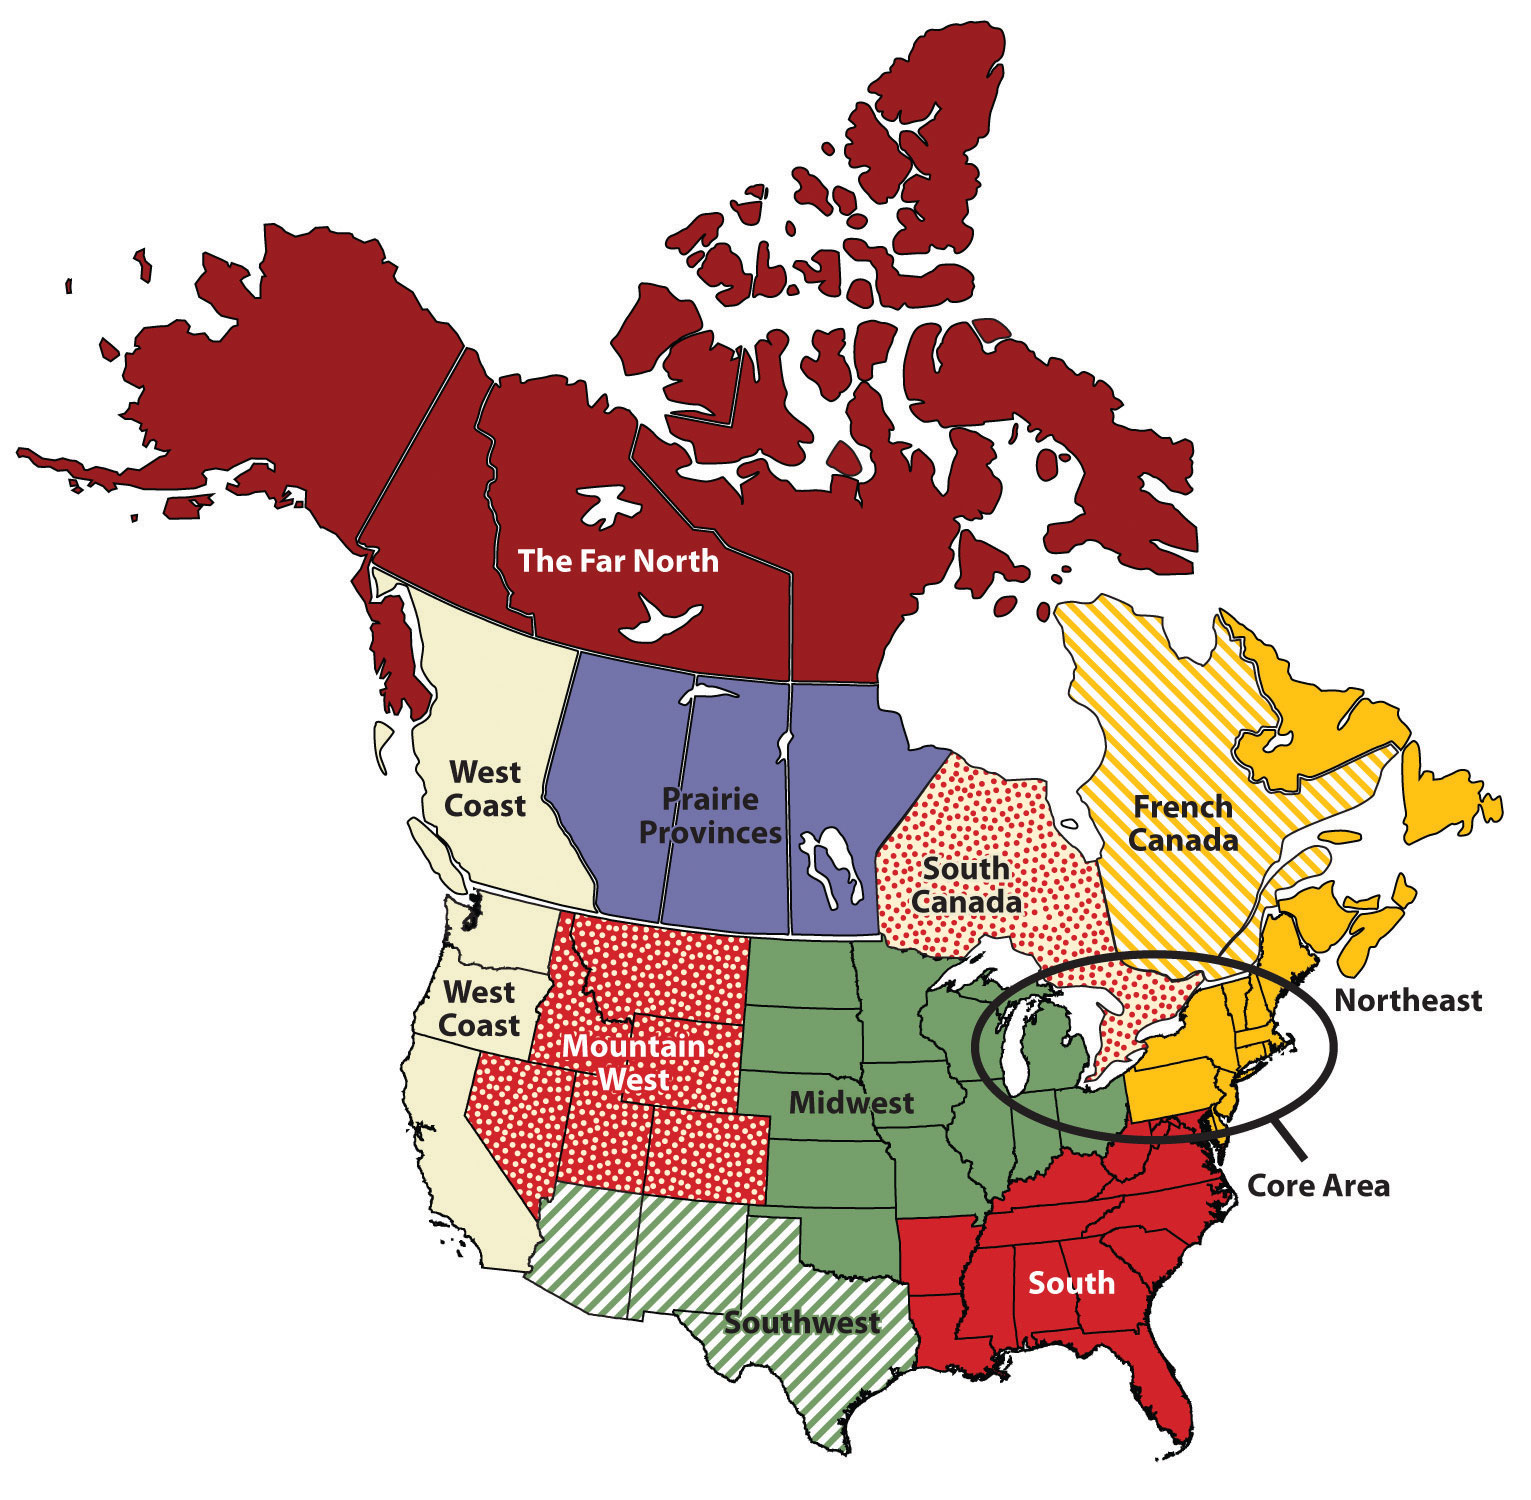 Map Of United States By Regions.Regions Of The United States And Canada